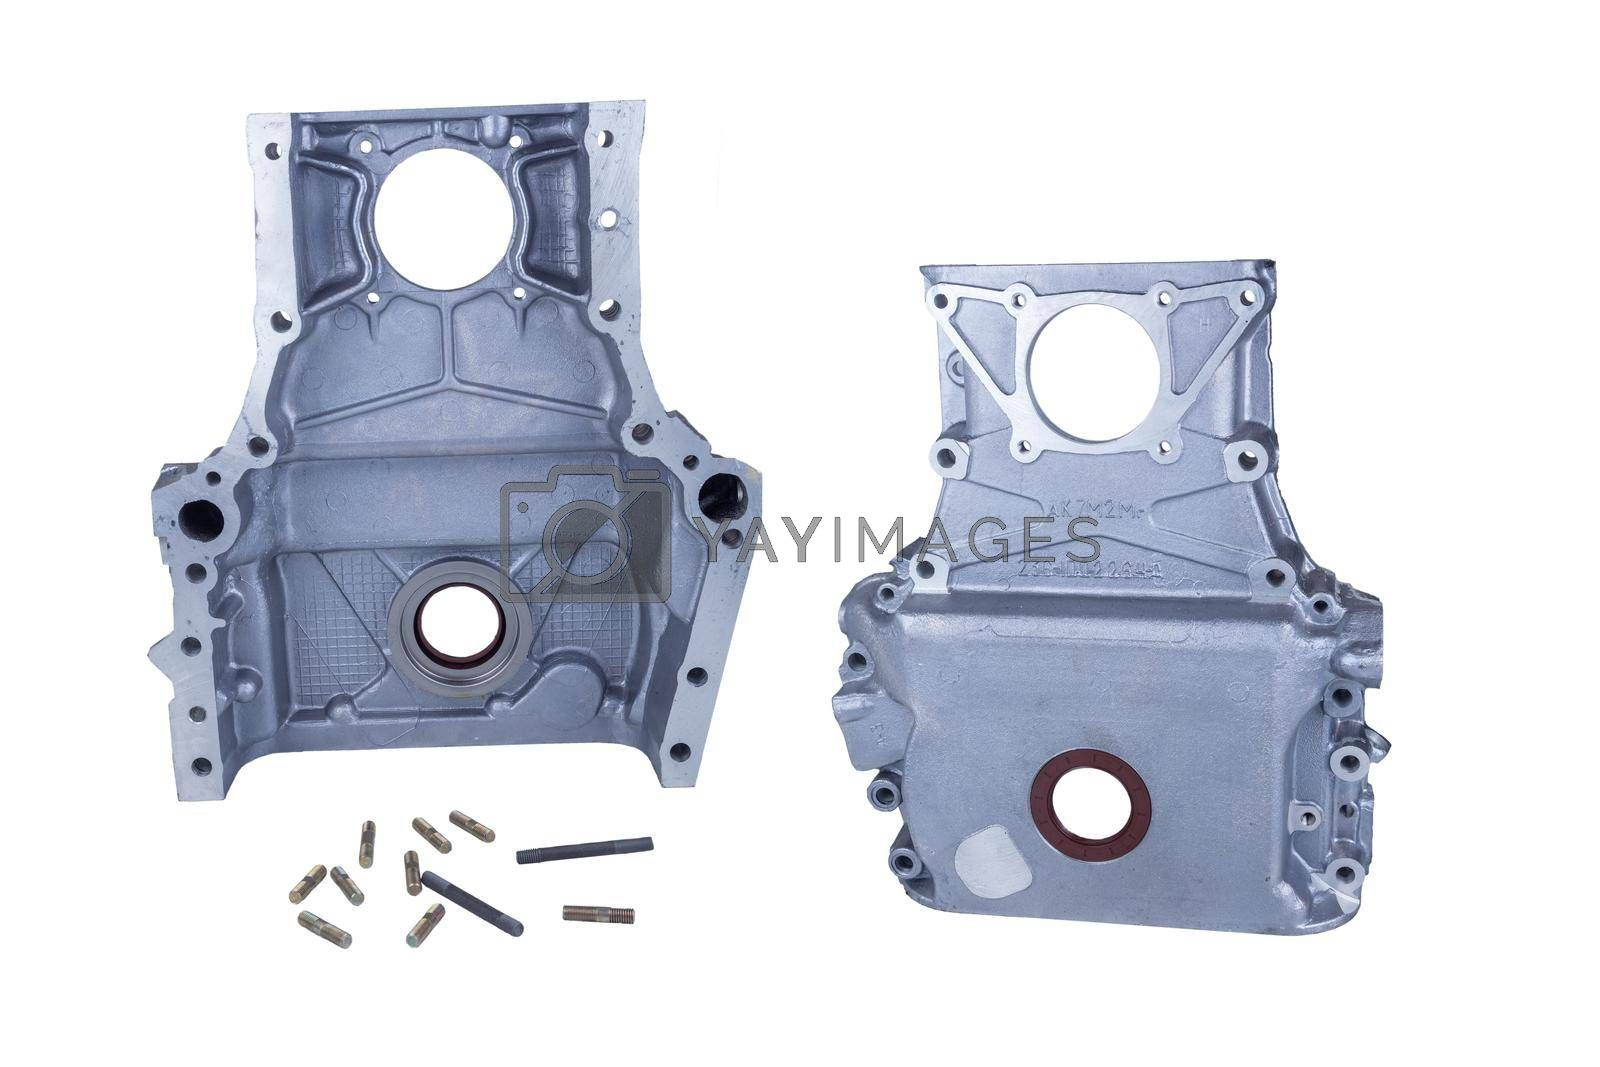 Royalty free image of front cover the engine of a Russian KAMAZ truck, isolated on a white background. front and rear view by forester